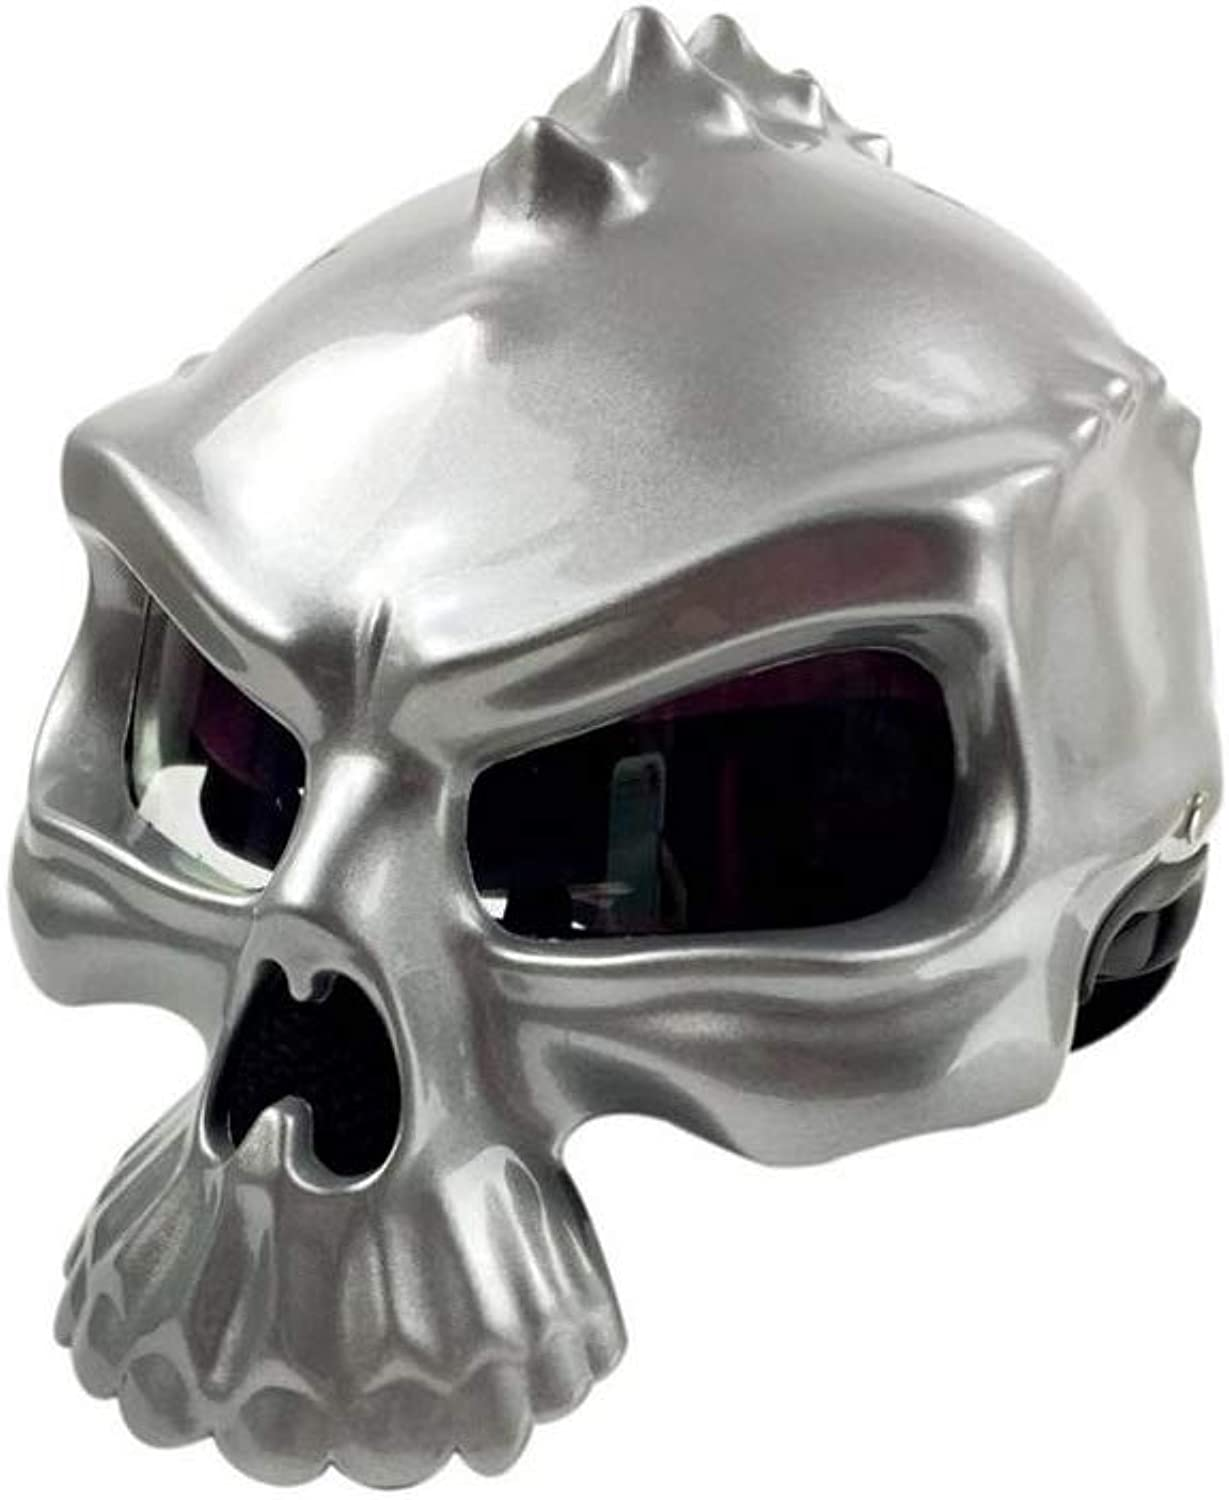 Fashion Motorcycle Motorcycle Skull Helmet Elf Half Helmet Harley Helmet Can Wear A Bubble Mirror DoubleSided Can Be Worn